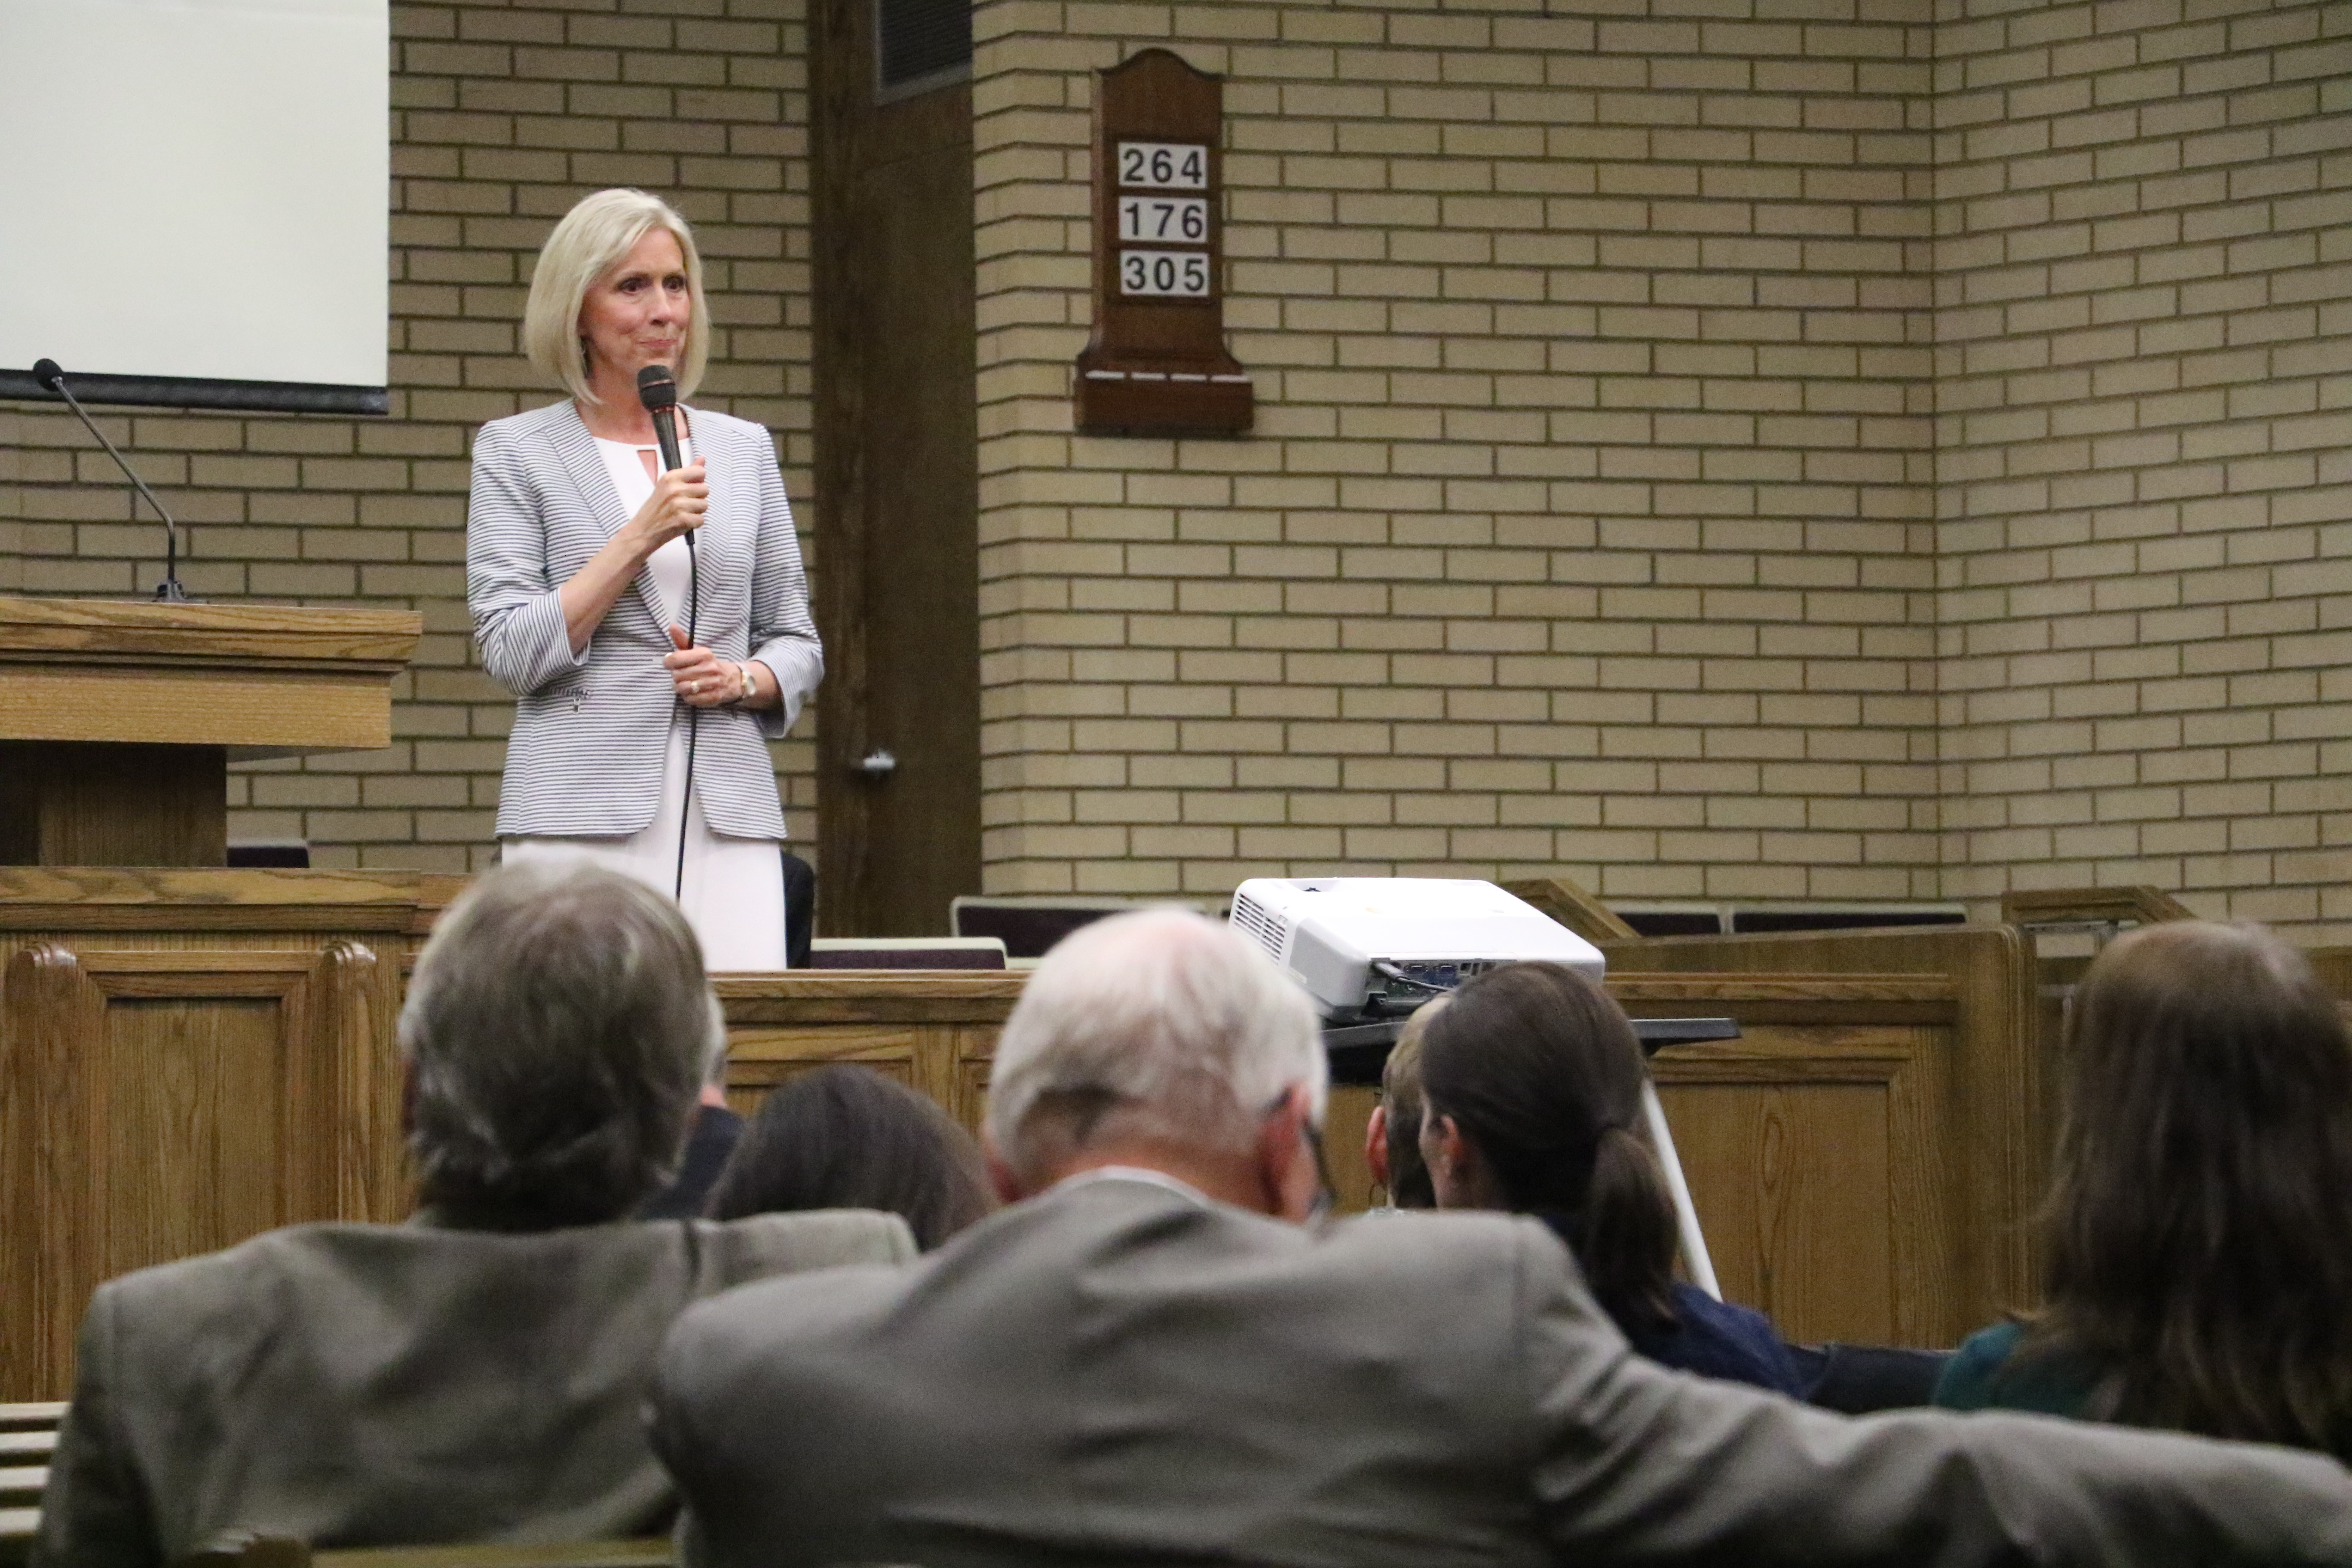 Sister Joy D. Jones speaks at a devotional on religious freedom and civic responsibility in Holladay, Utah, on Sept. 22, 2019